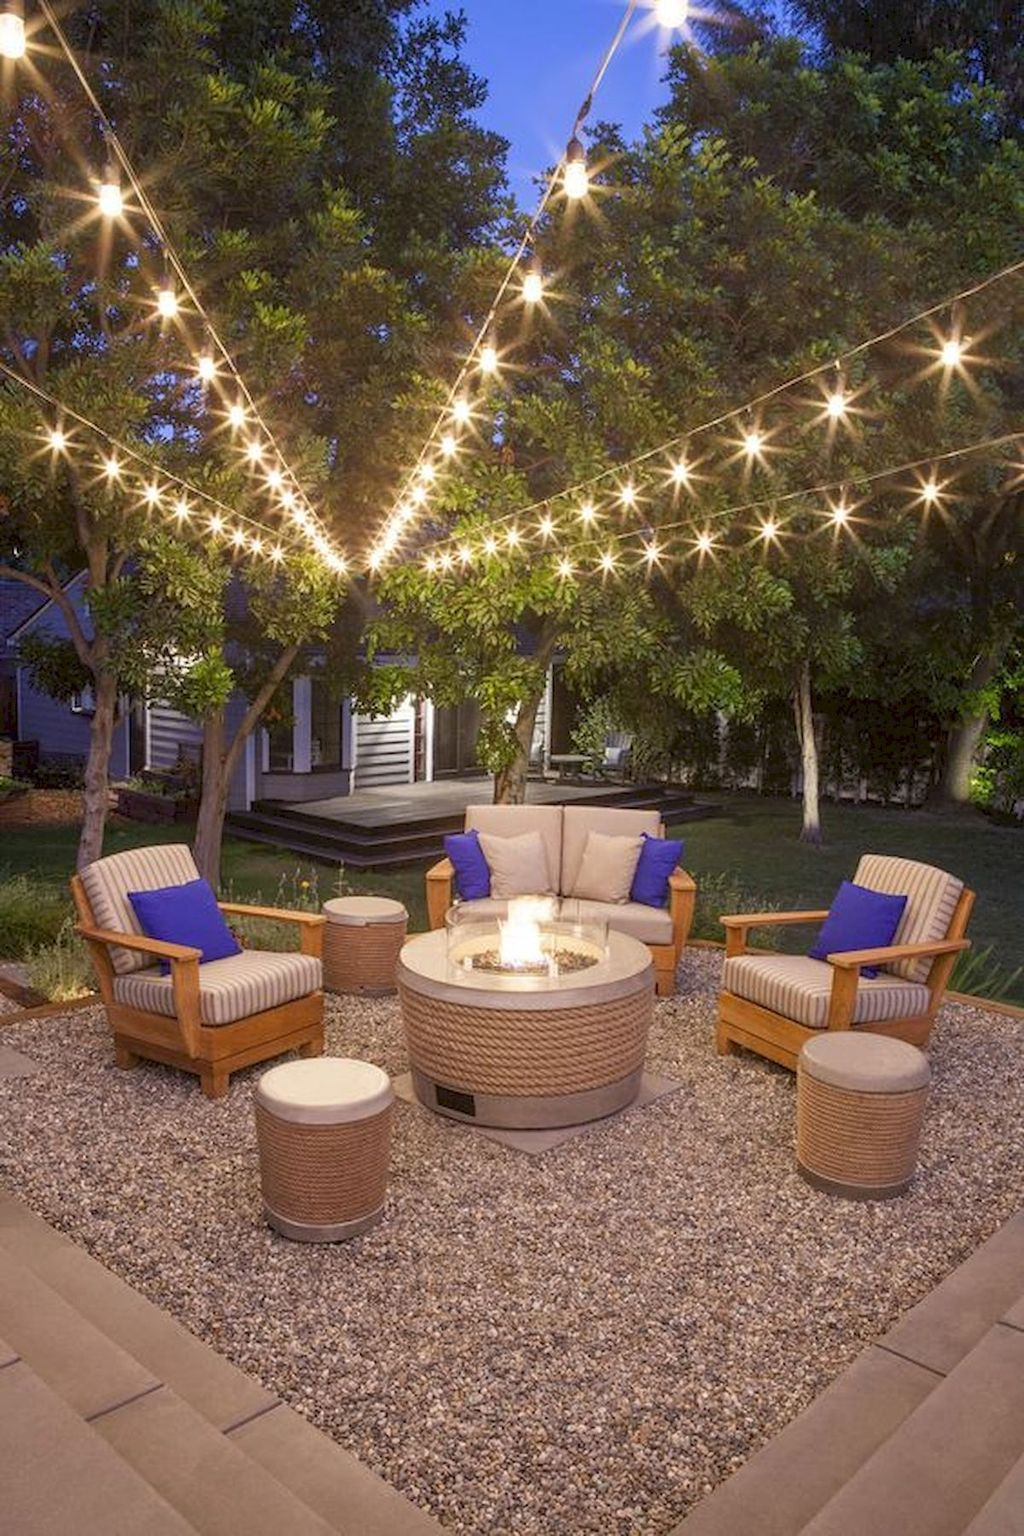 Amazing Fire Pit Design Ideas For Your Backyard Decor 25